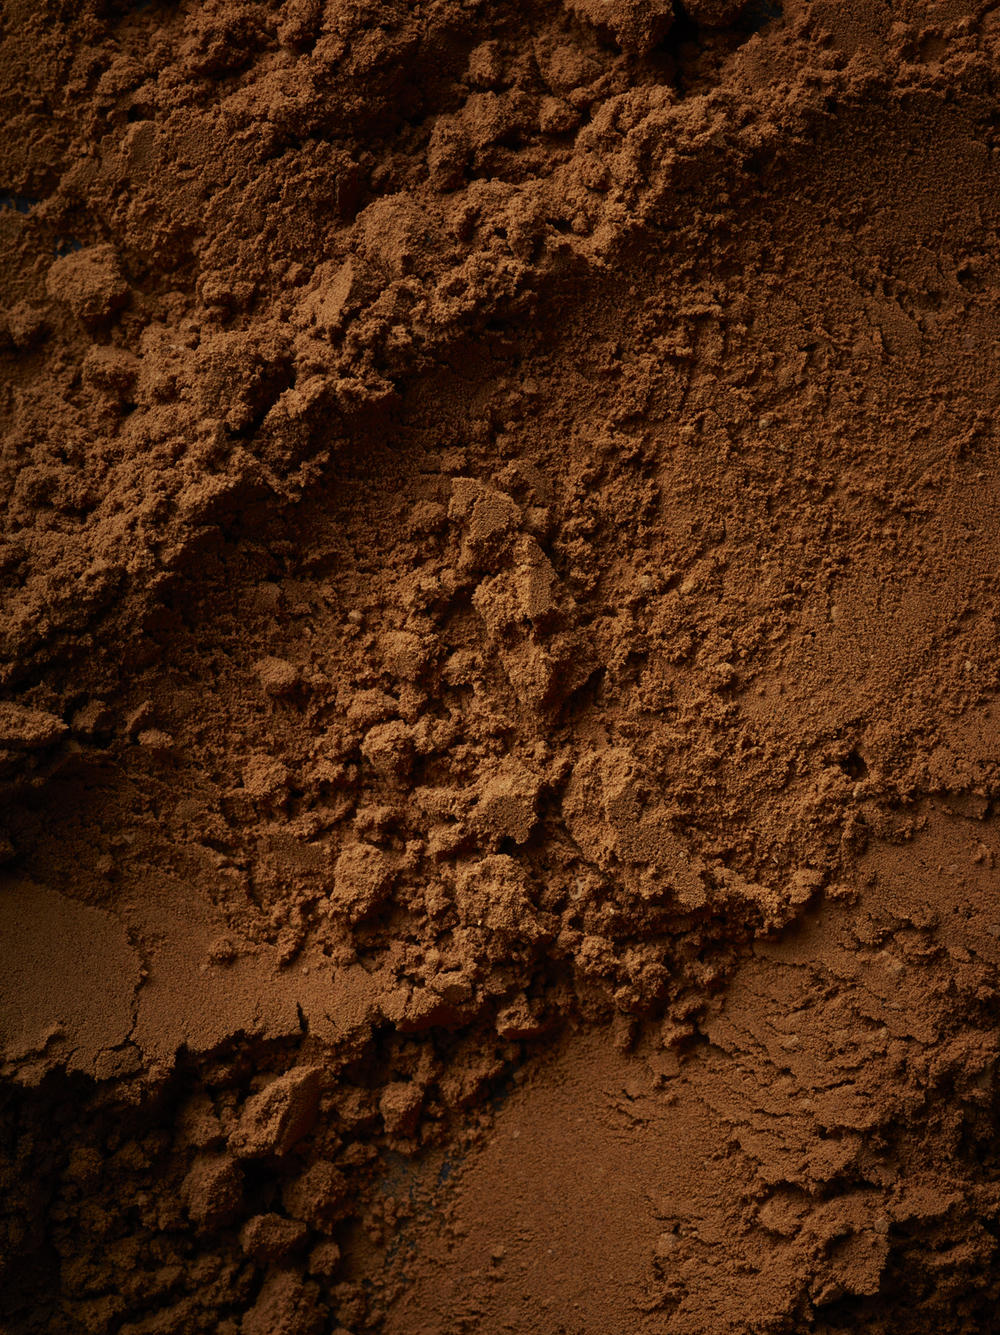 Food and drink photographer and tabletop director Scott Grummett based in London. Shooting Advertising, editorial, packaging, pr and more. Shown here is food photography from food photographer and director Scott Grummett of   chocolate, cocoa, raspberry, fondue dip melted gloss, cocoa powder